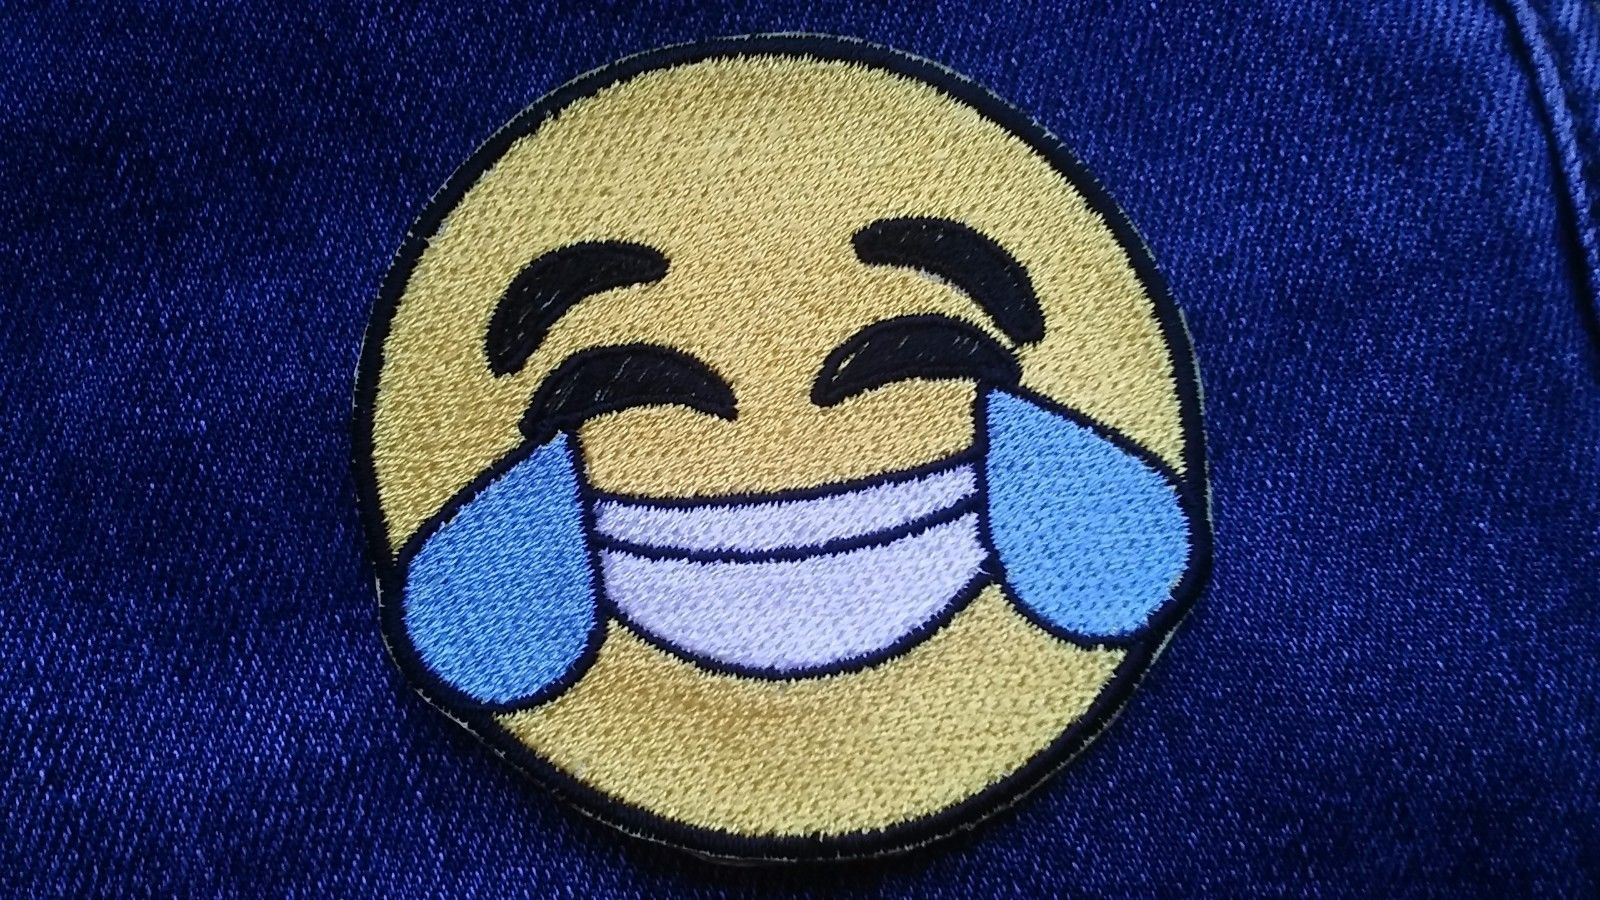 Emoji Smiley Face Embroidered Patches Iron Sew On Jeans Jacket Badge Applique